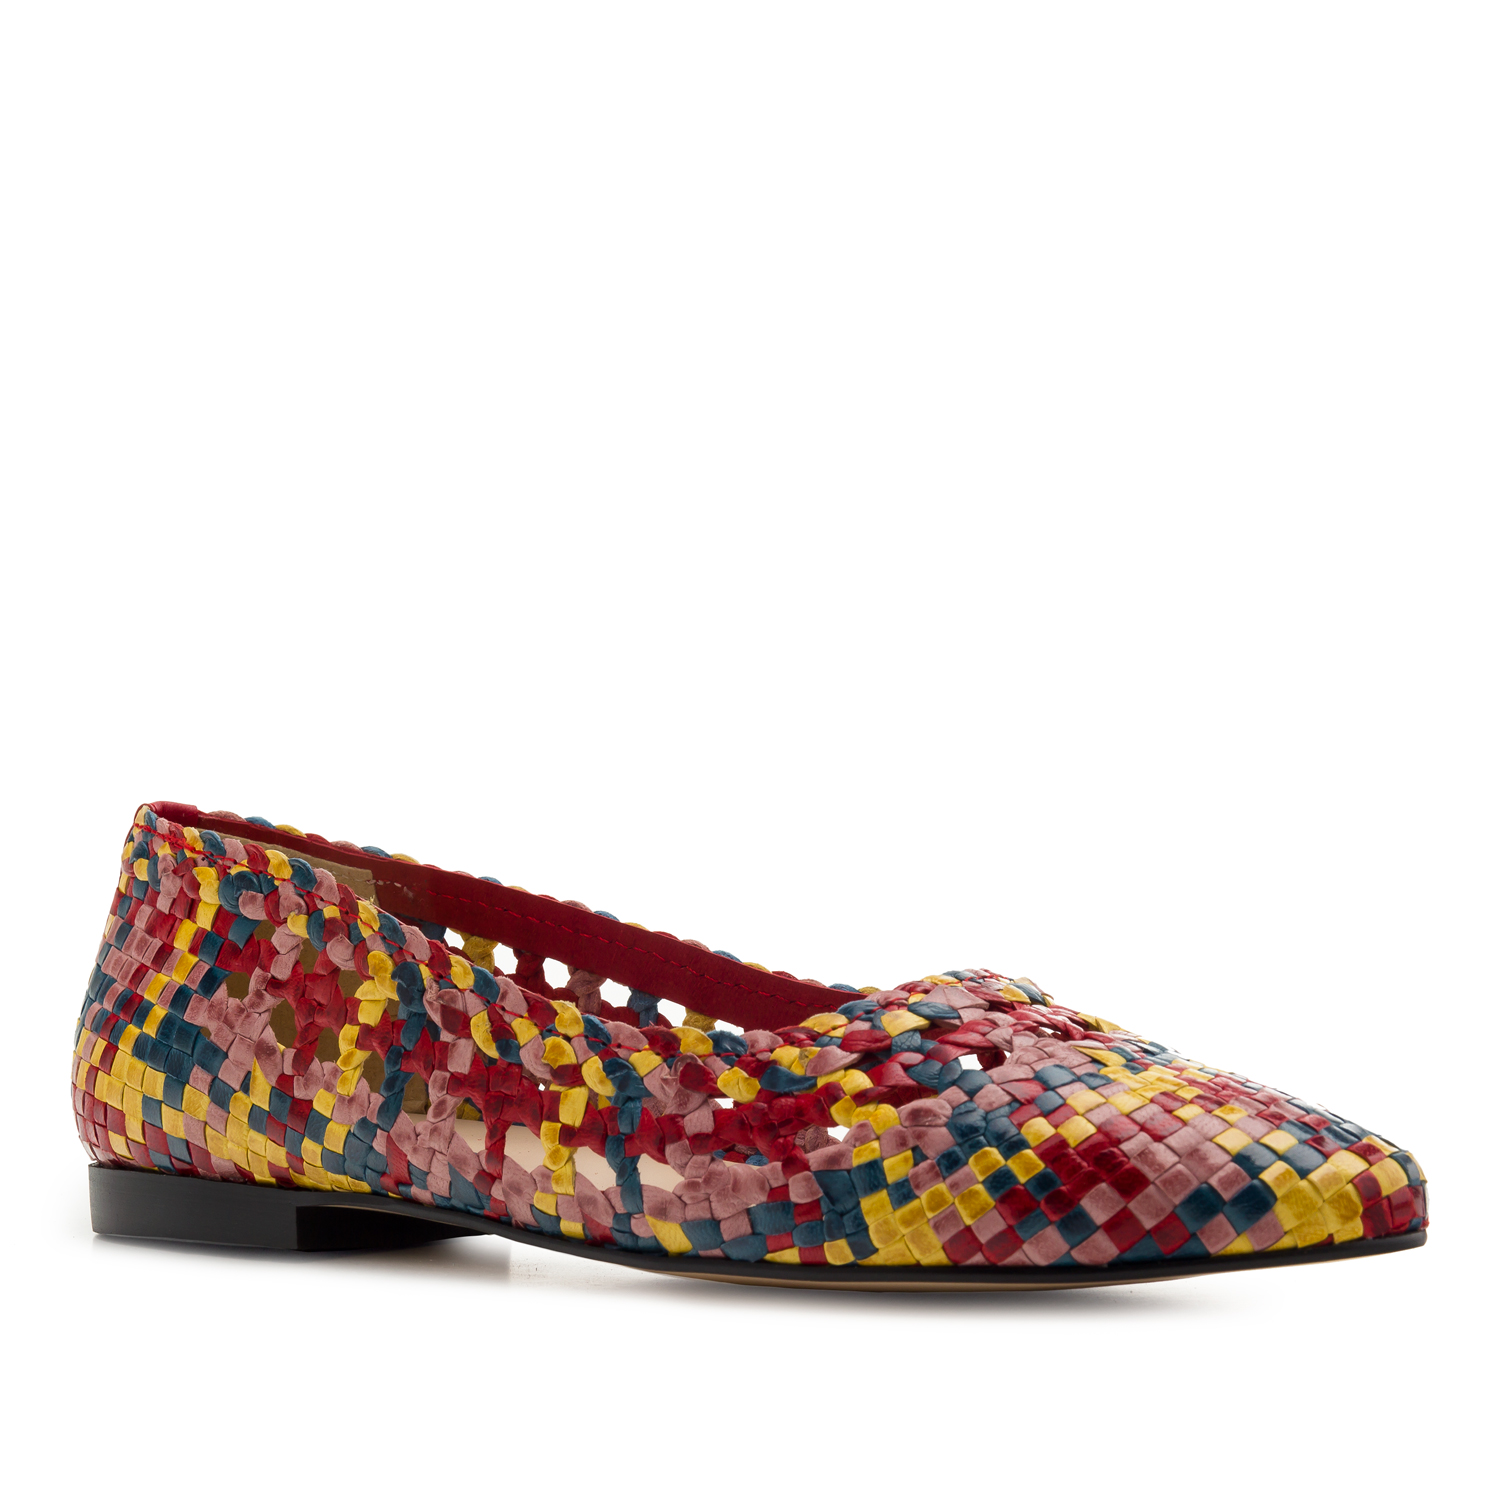 Braided Ballet Flats in Multicolour Leather